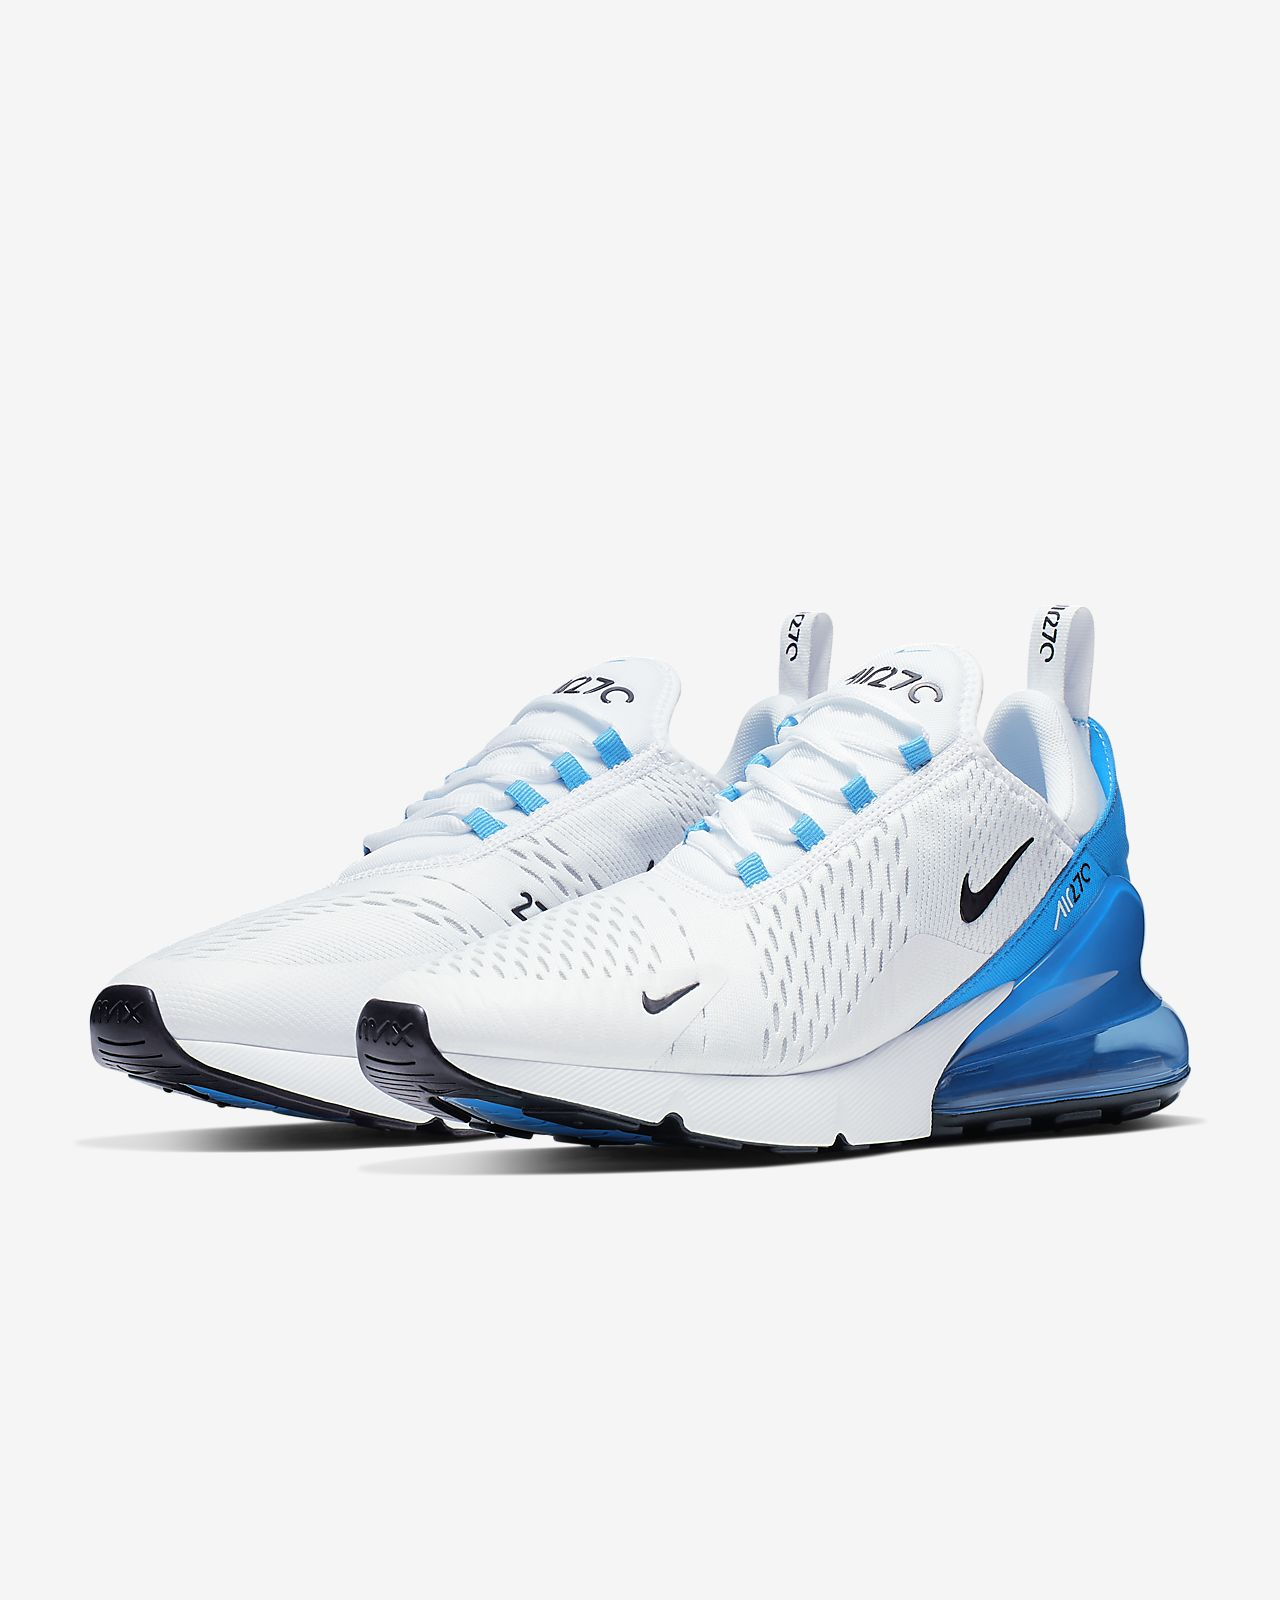 0d4d475c40c08 Scarpa Nike Air Max 270 - Uomo. Nike.com IT